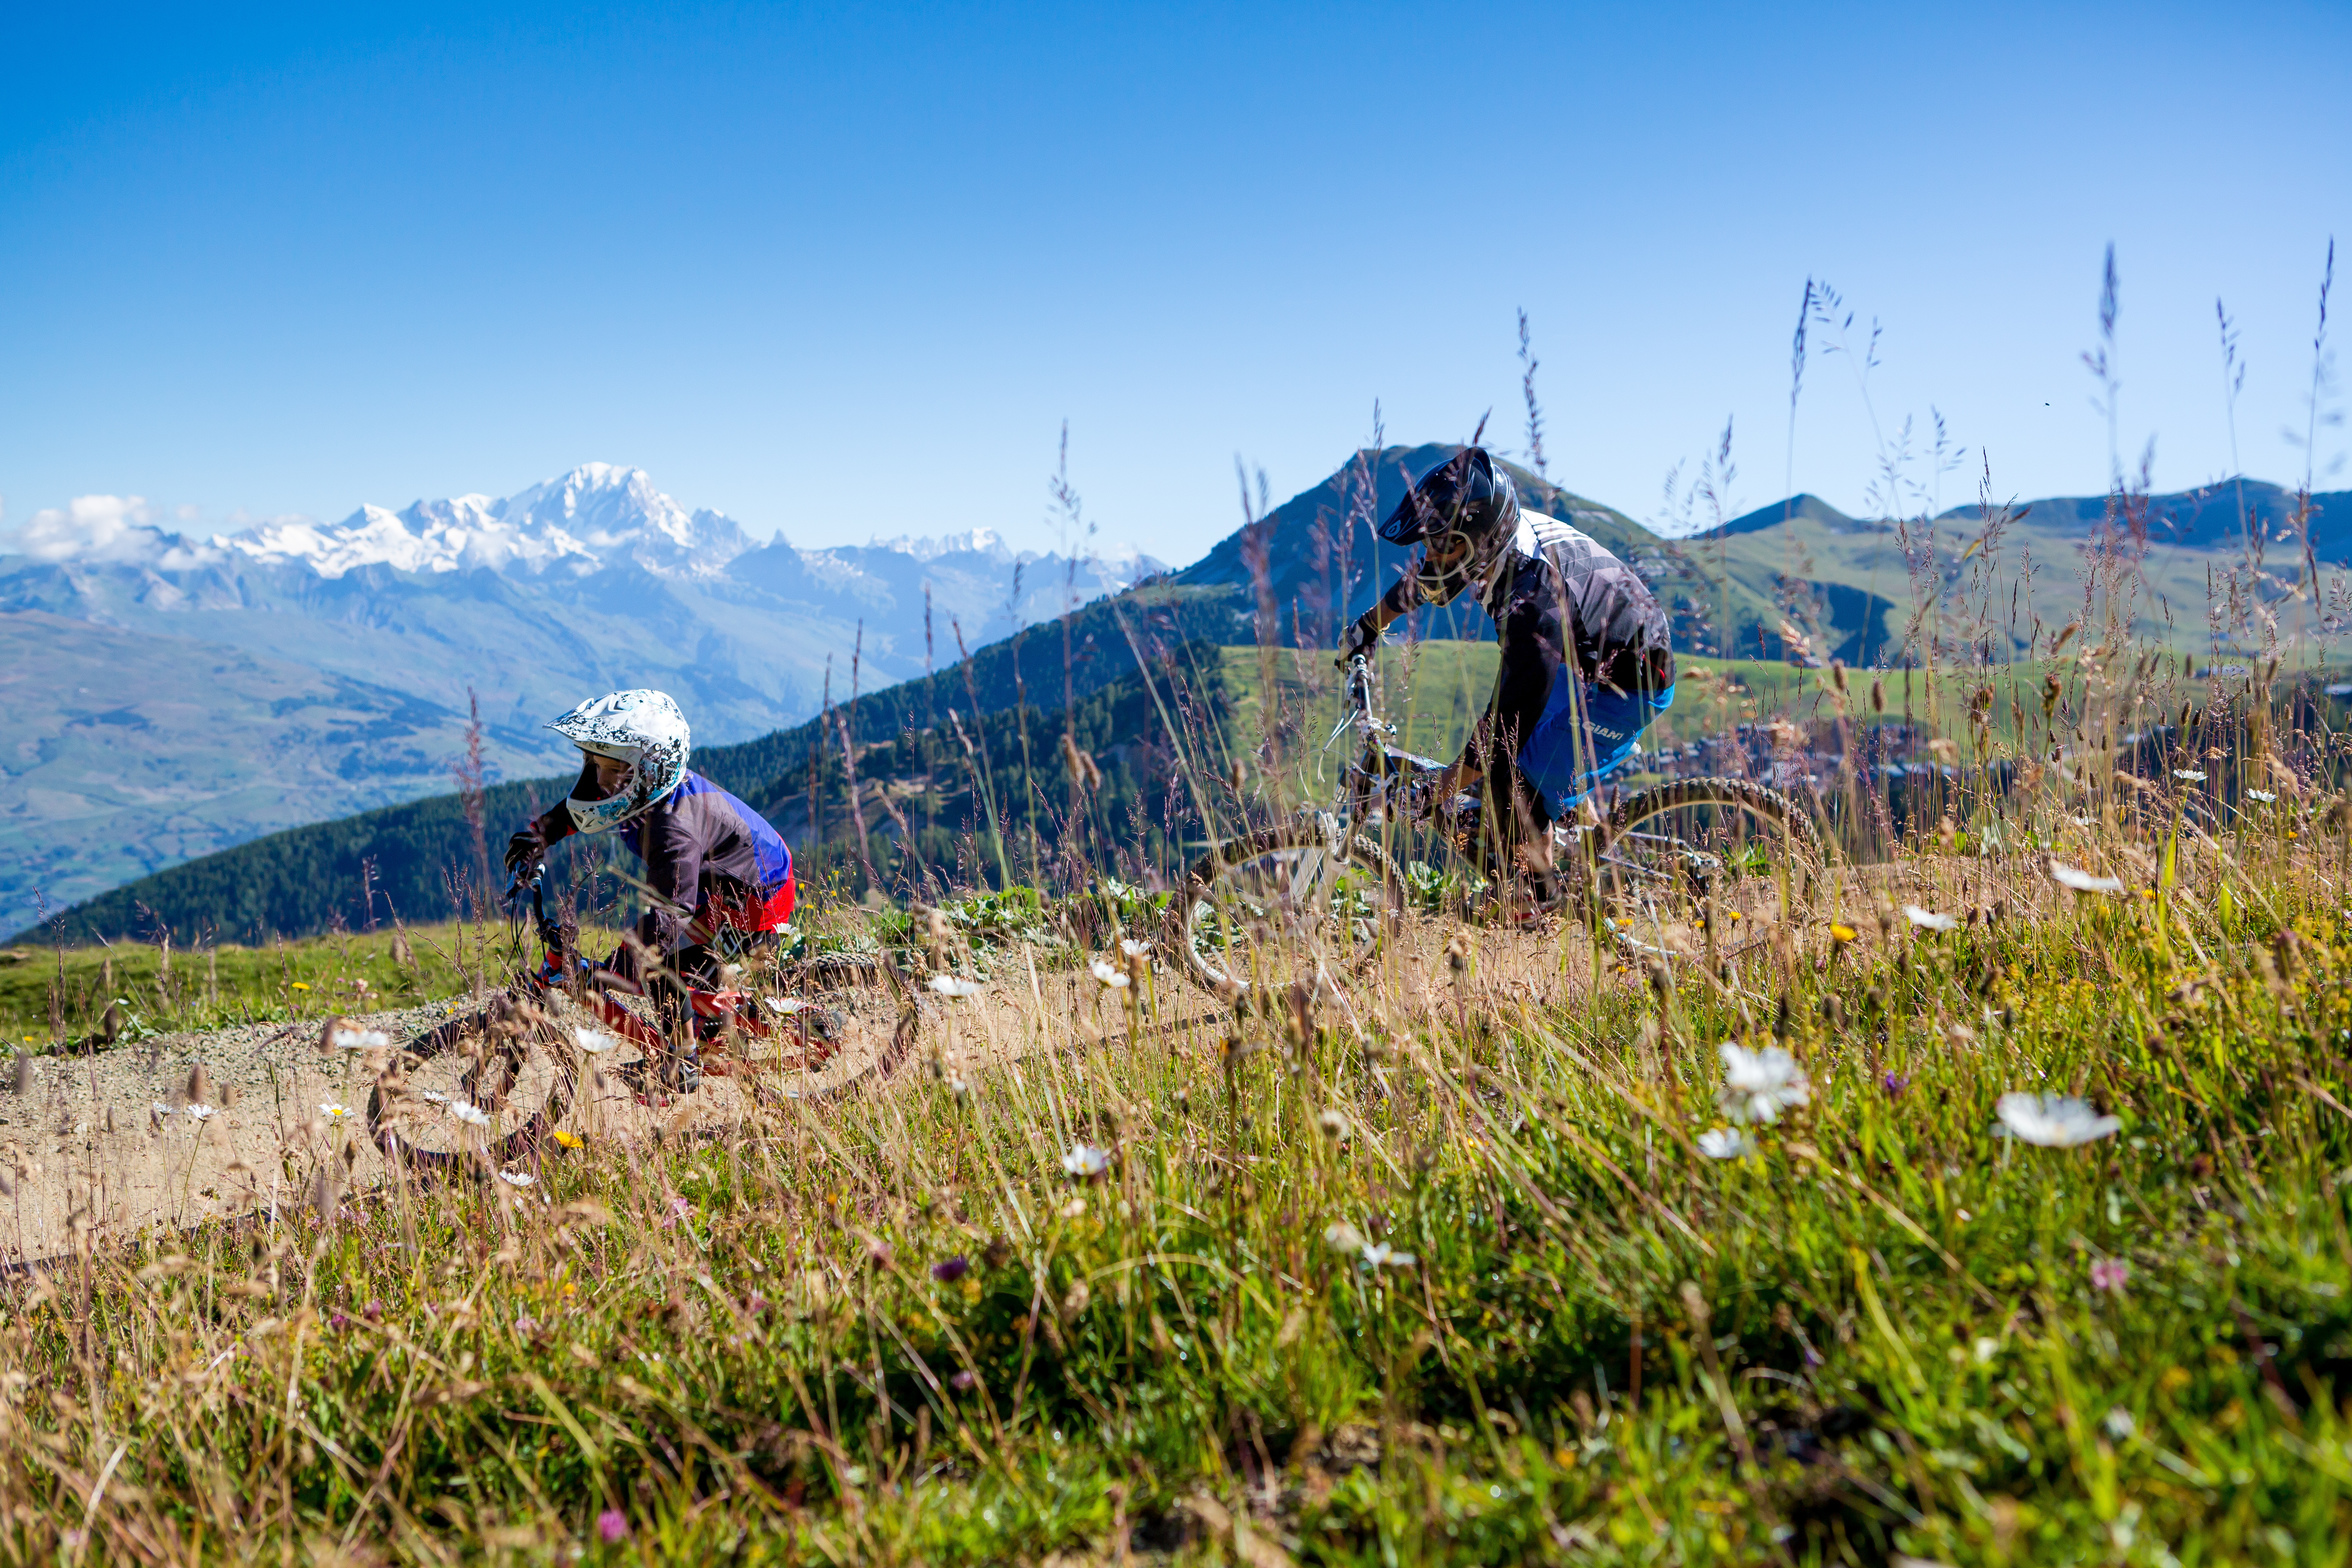 Bike Park in la Plagne. Hurtle down the mountain in VTT. Bike Park Colorado in la Plagne